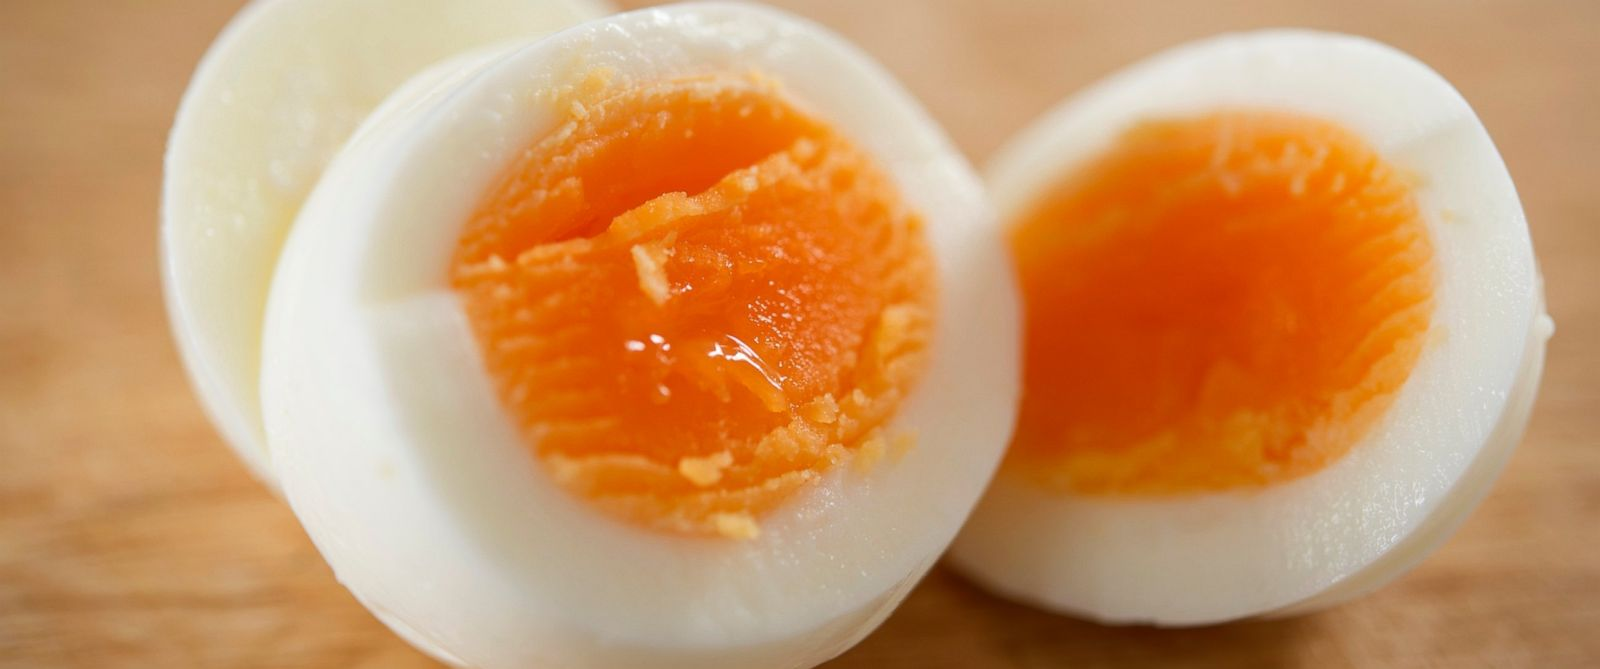 PHOTO: Scientists can now return a hard boiled egg white back to its original state.Scientists can now return a hard boiled egg white back to its original state.